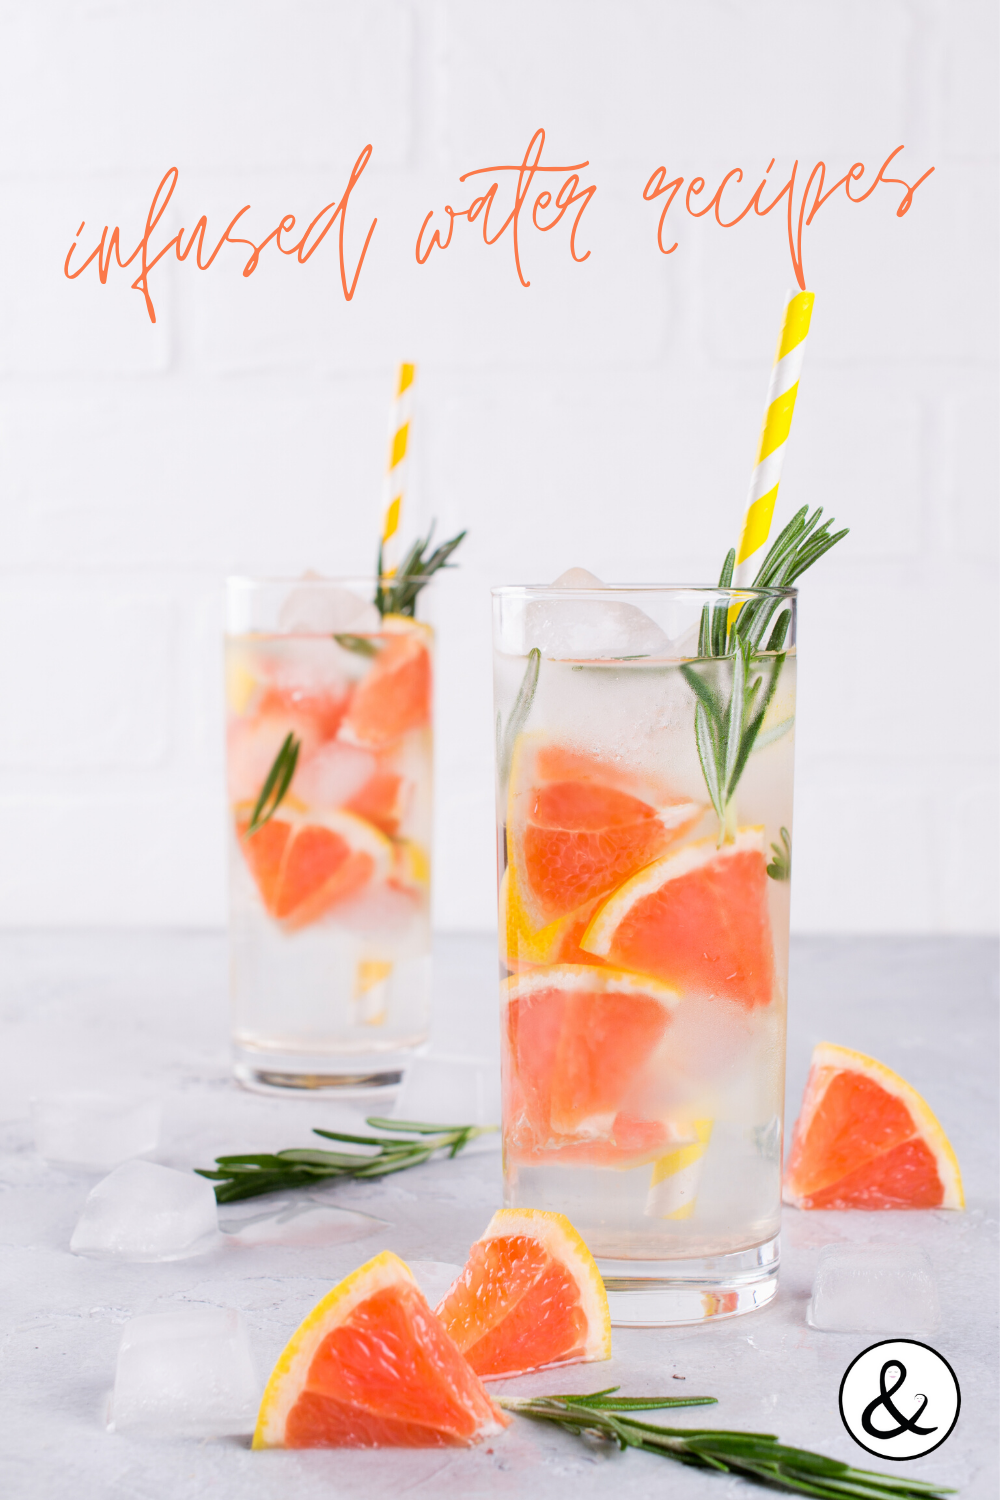 Infused Water Recipes to Try